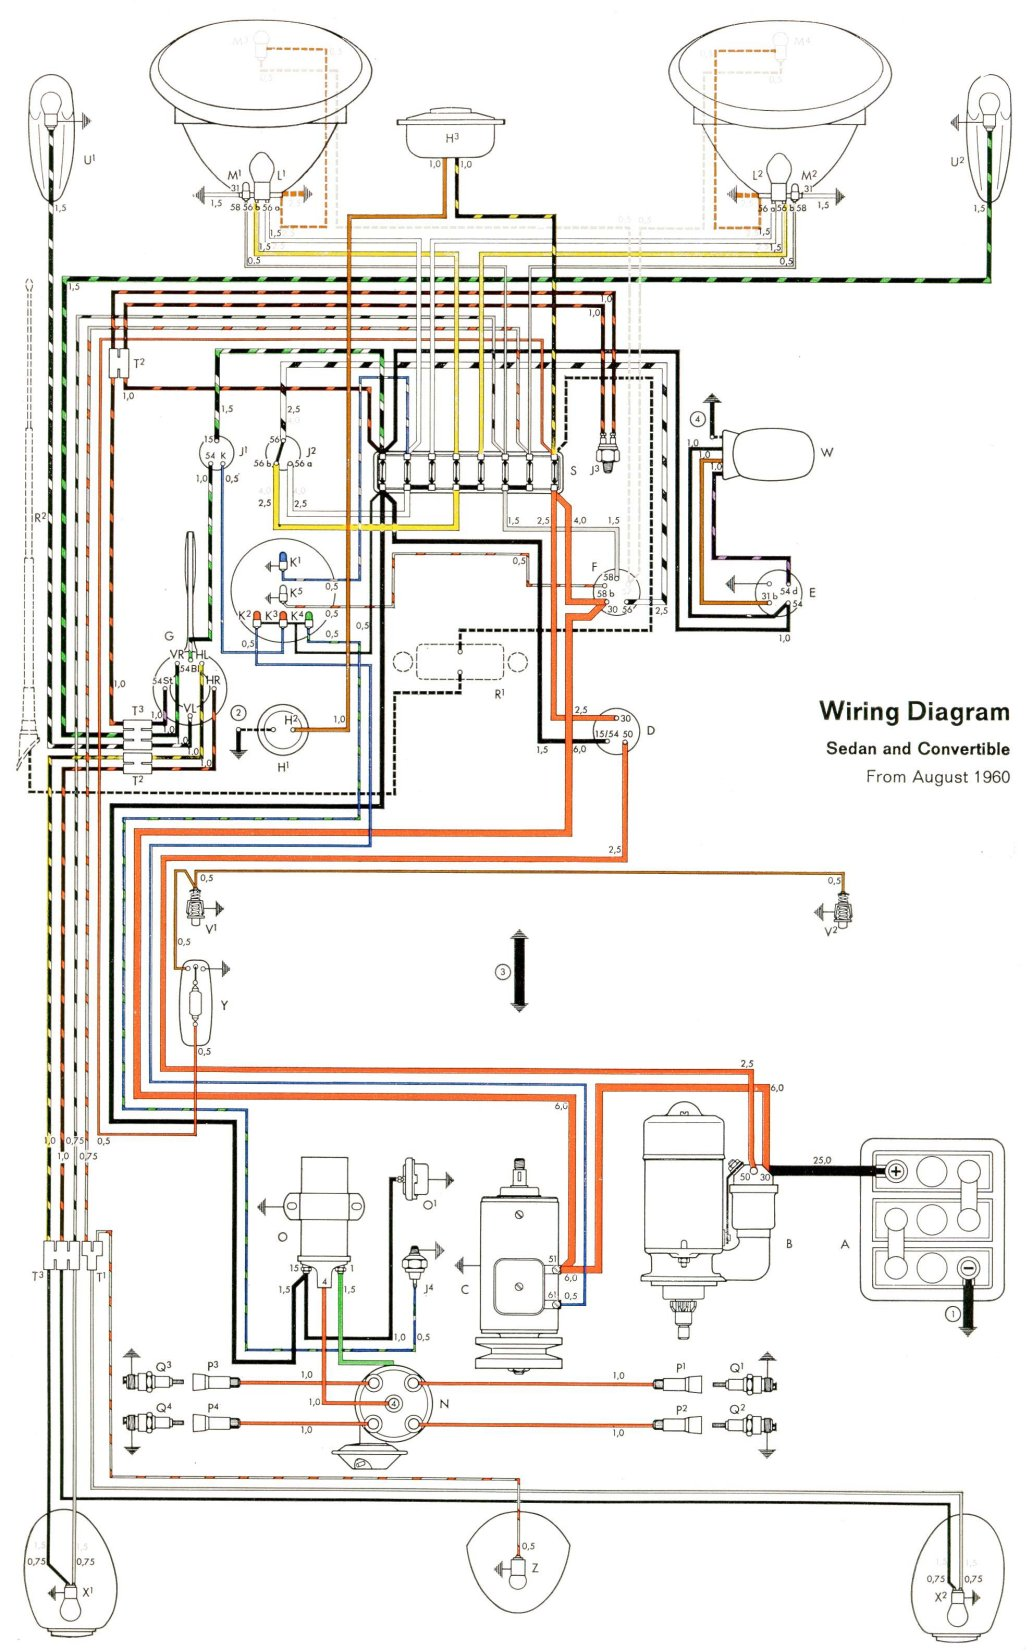 hight resolution of wiring diagram for 1969 vw beetle detailed schematics diagram rh jppastryarts com 1979 vw bus wiring